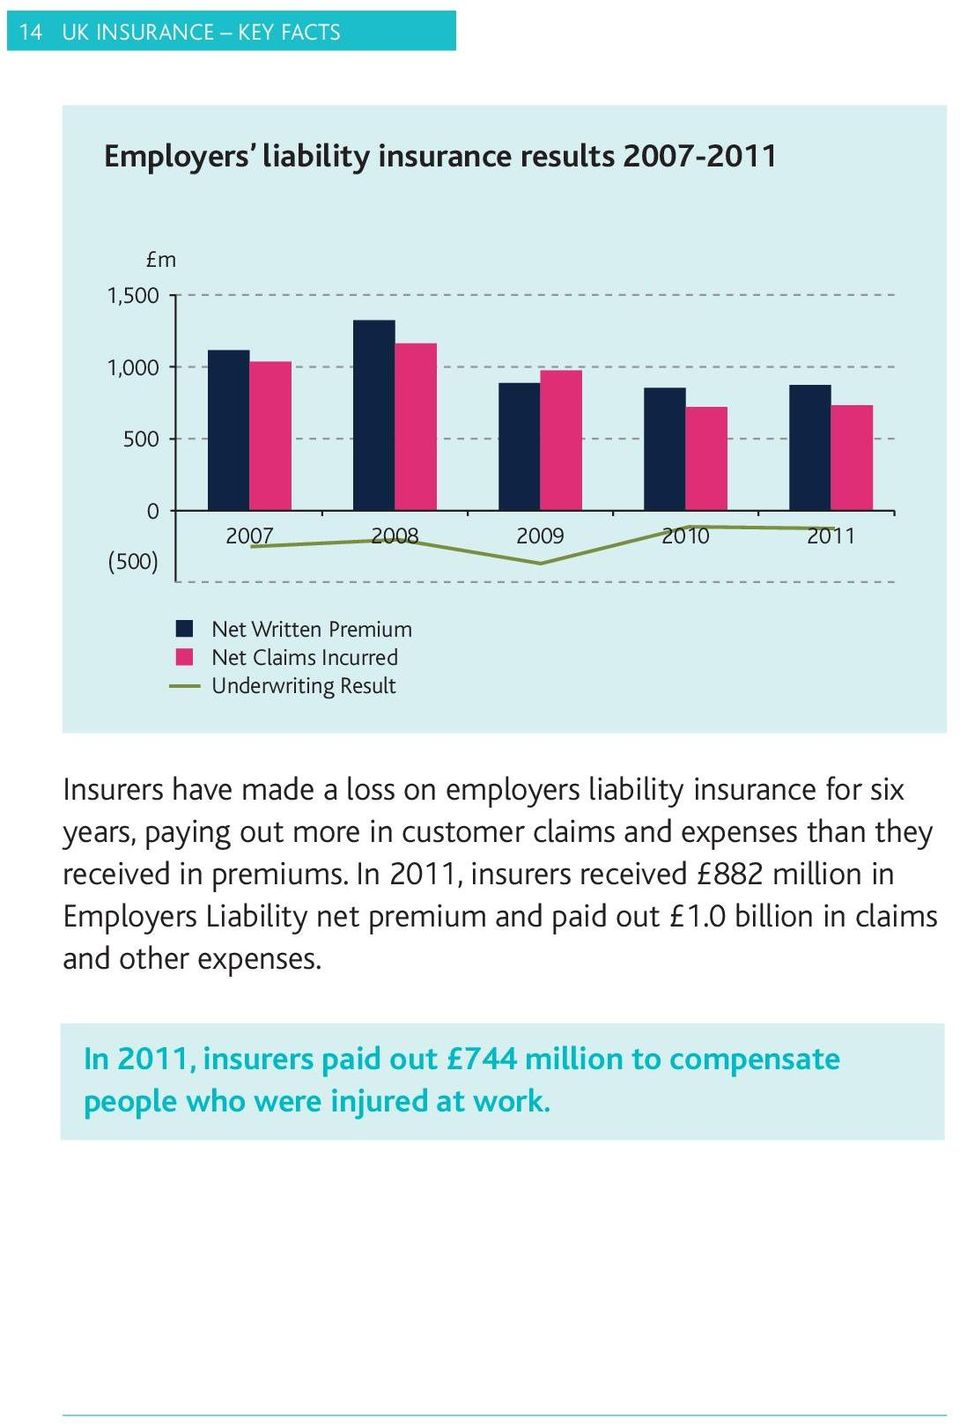 in customer claims and expenses than they received in premiums.